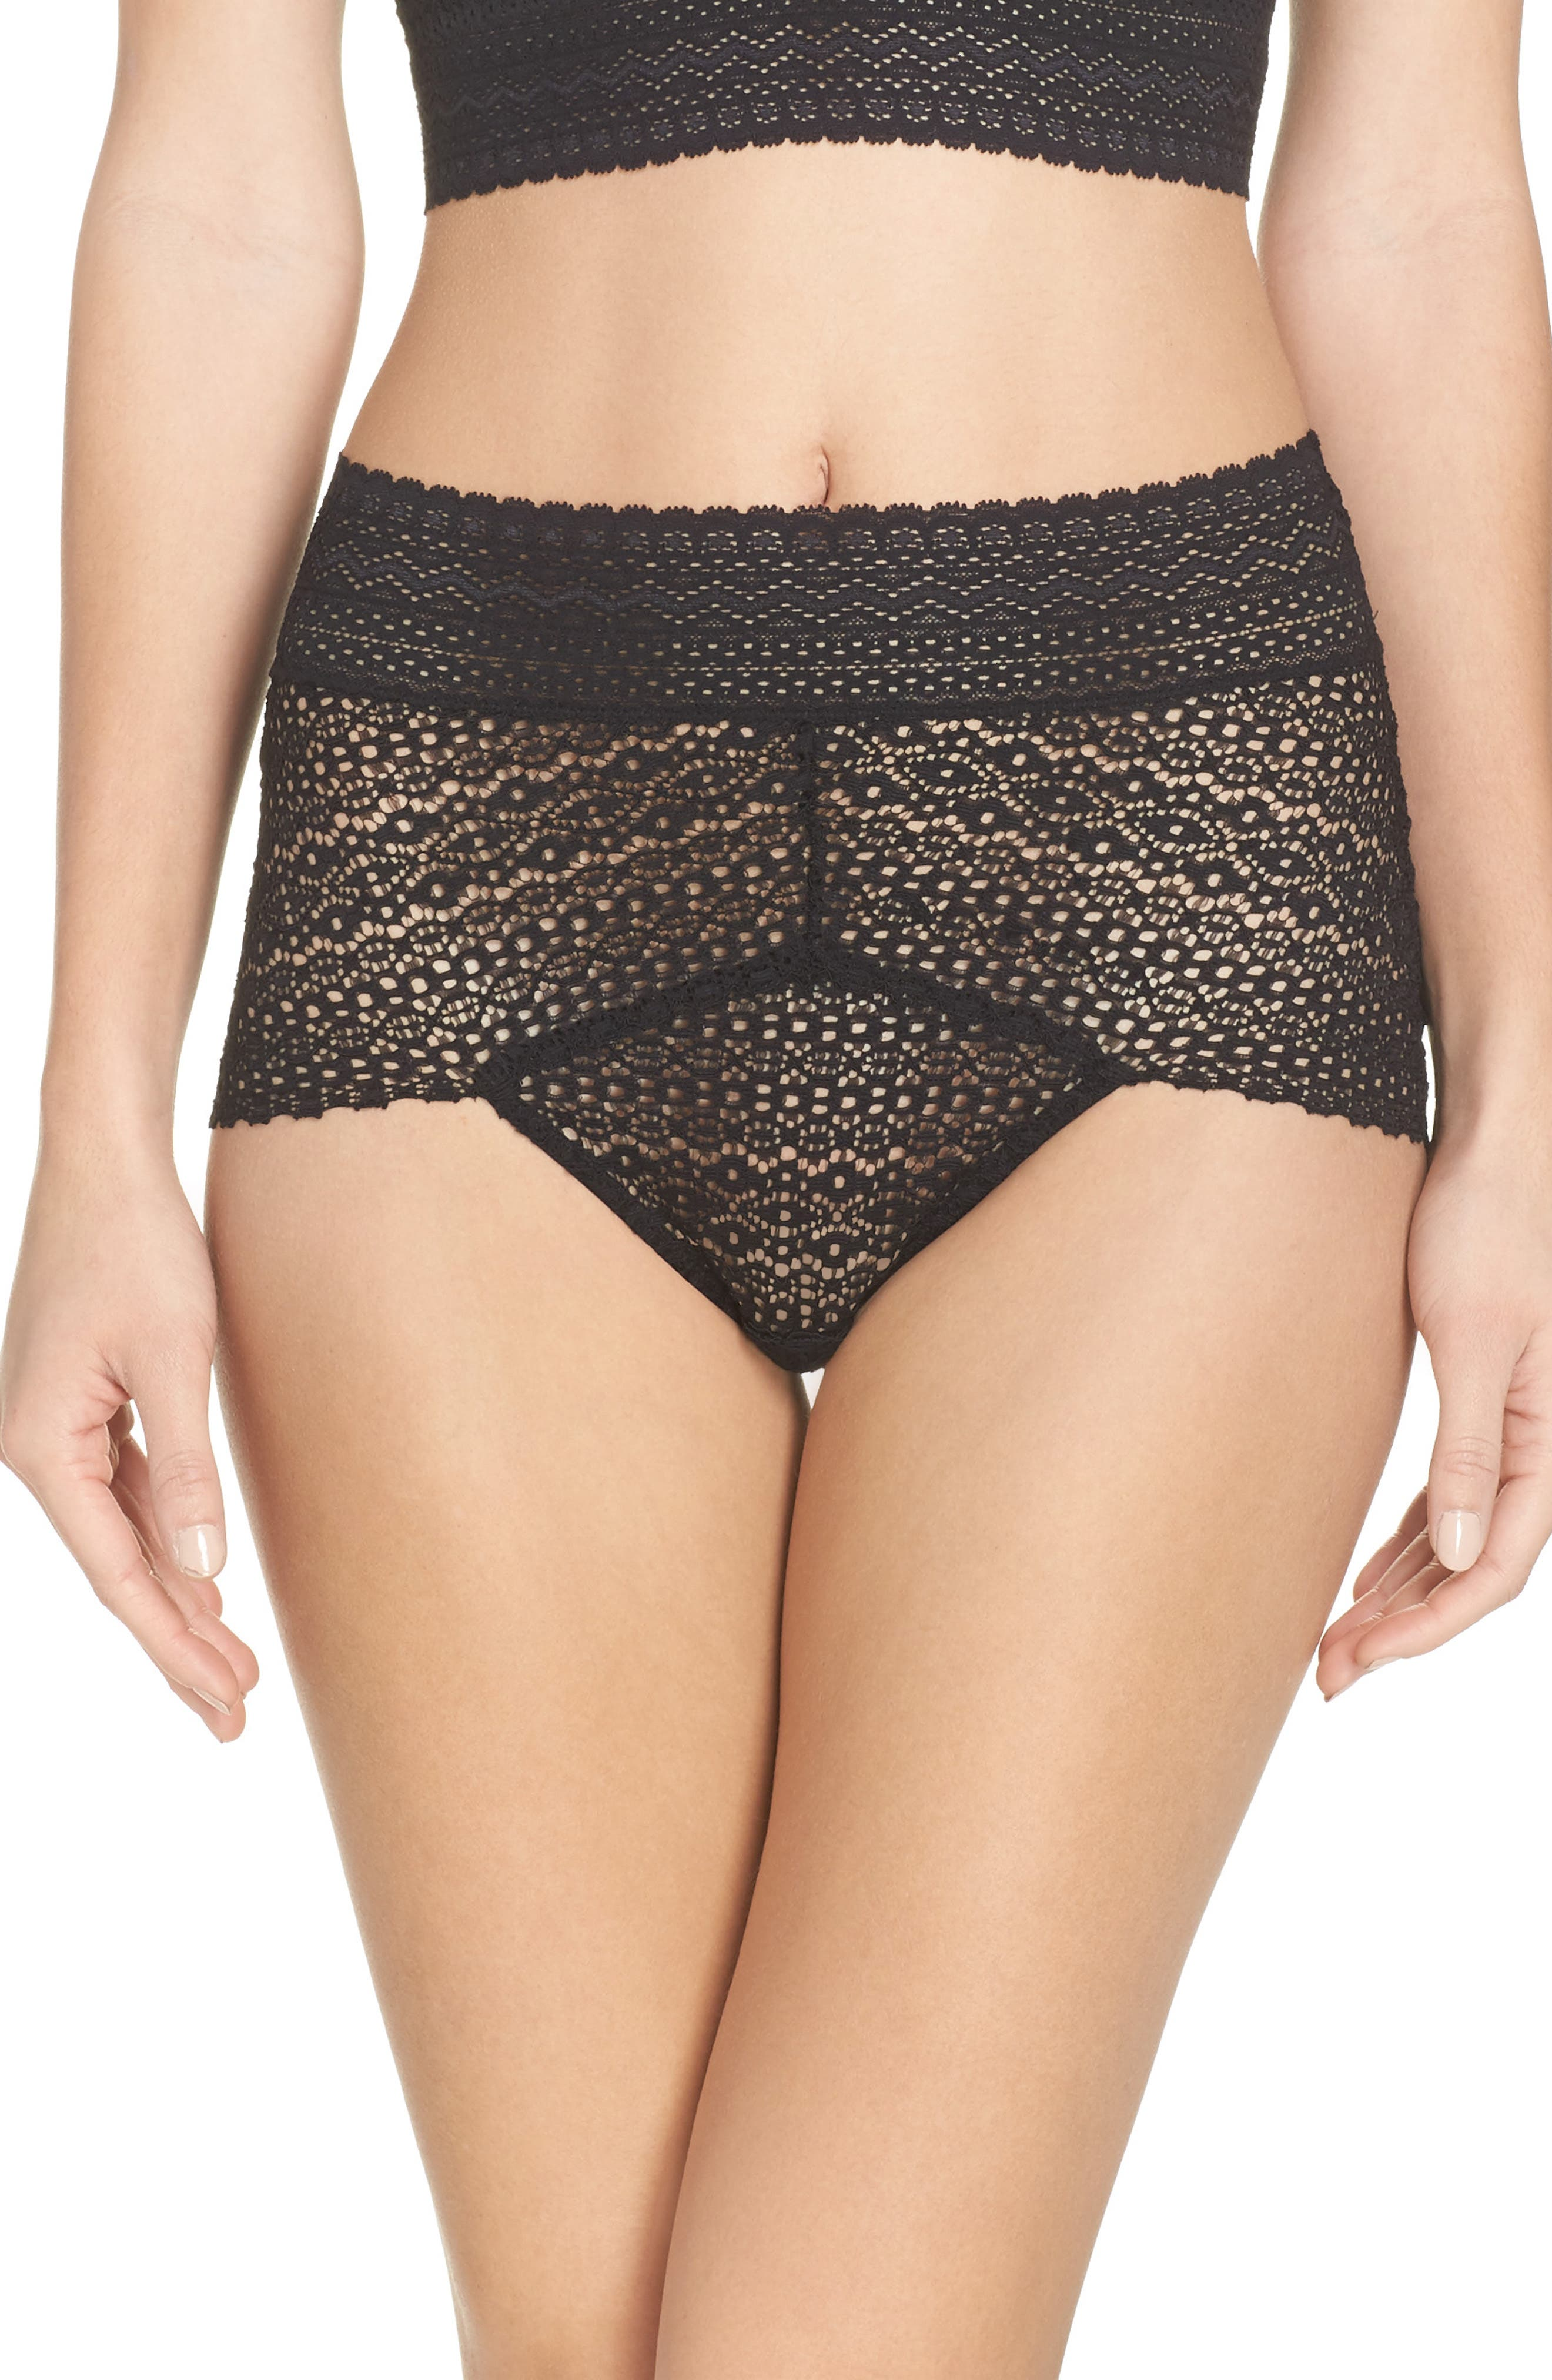 Rumi High Waist Briefs,                             Main thumbnail 1, color,                             001